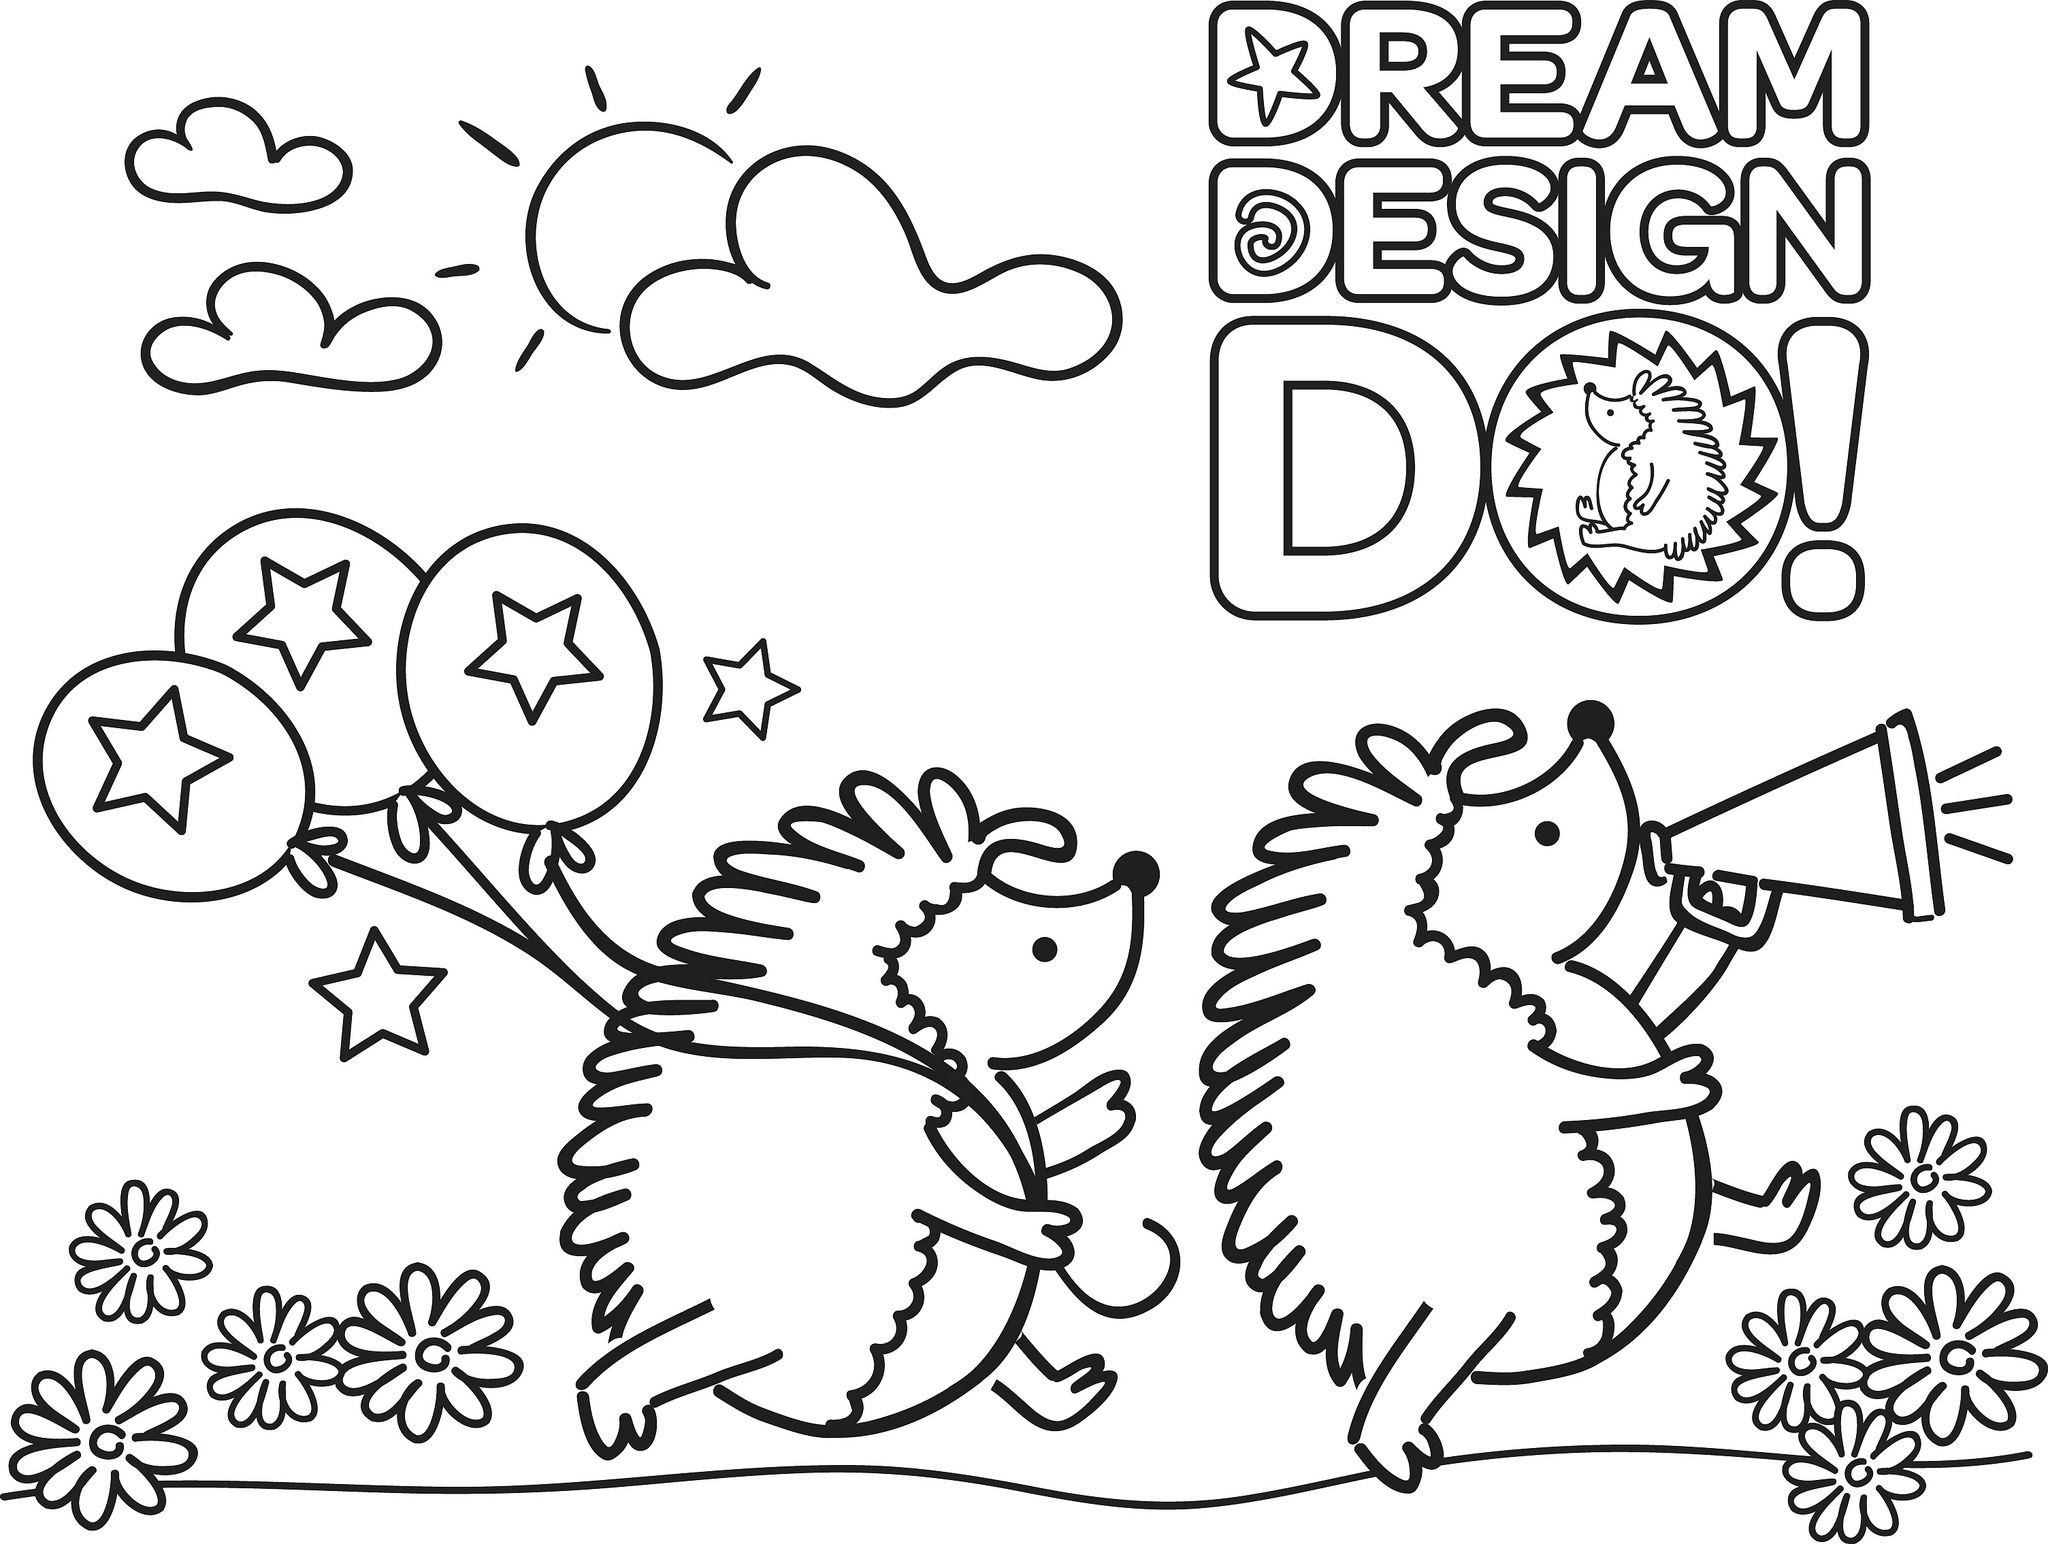 girl scout cookies coloring pages girl scout cookies coloring page new girl scout cookies 2 coloring pages scout cookies girl